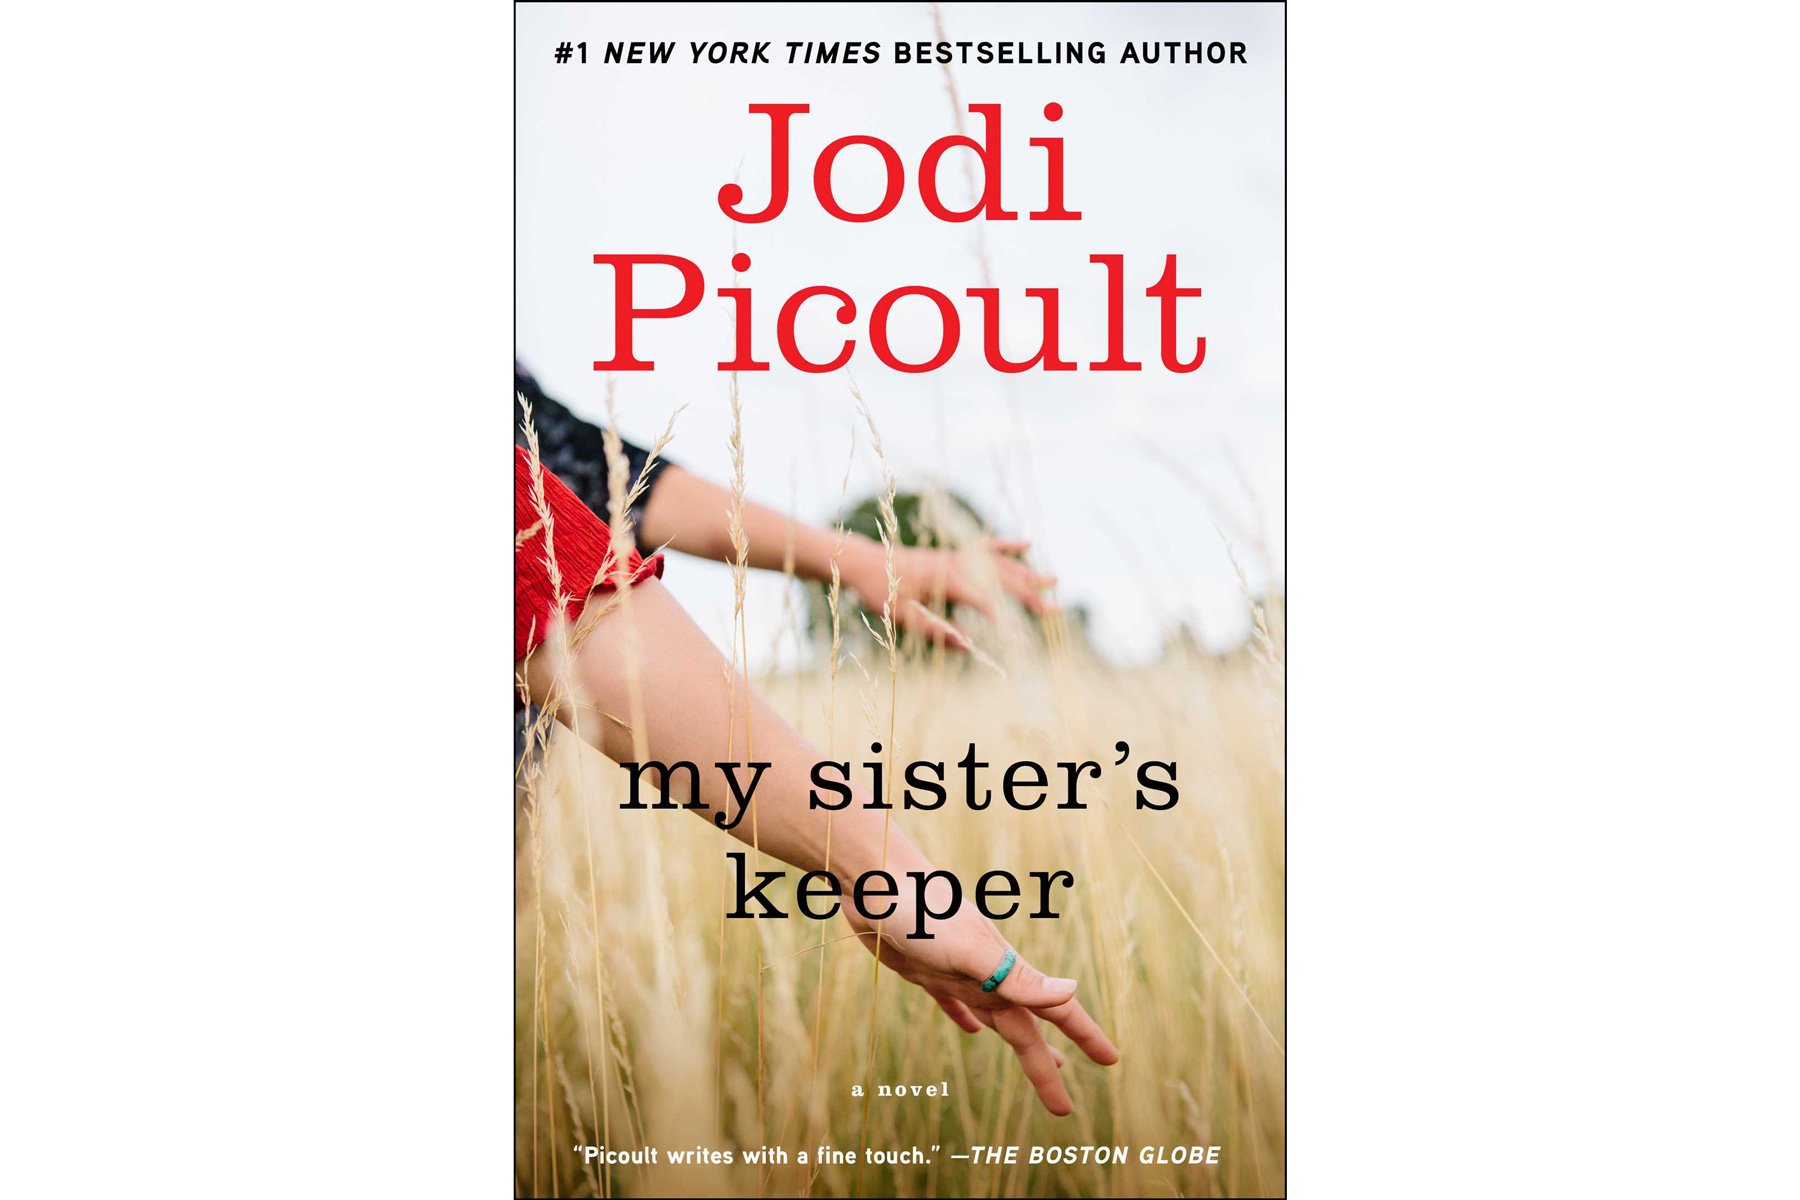 My Sister's Keeper, by Jodi Picoult